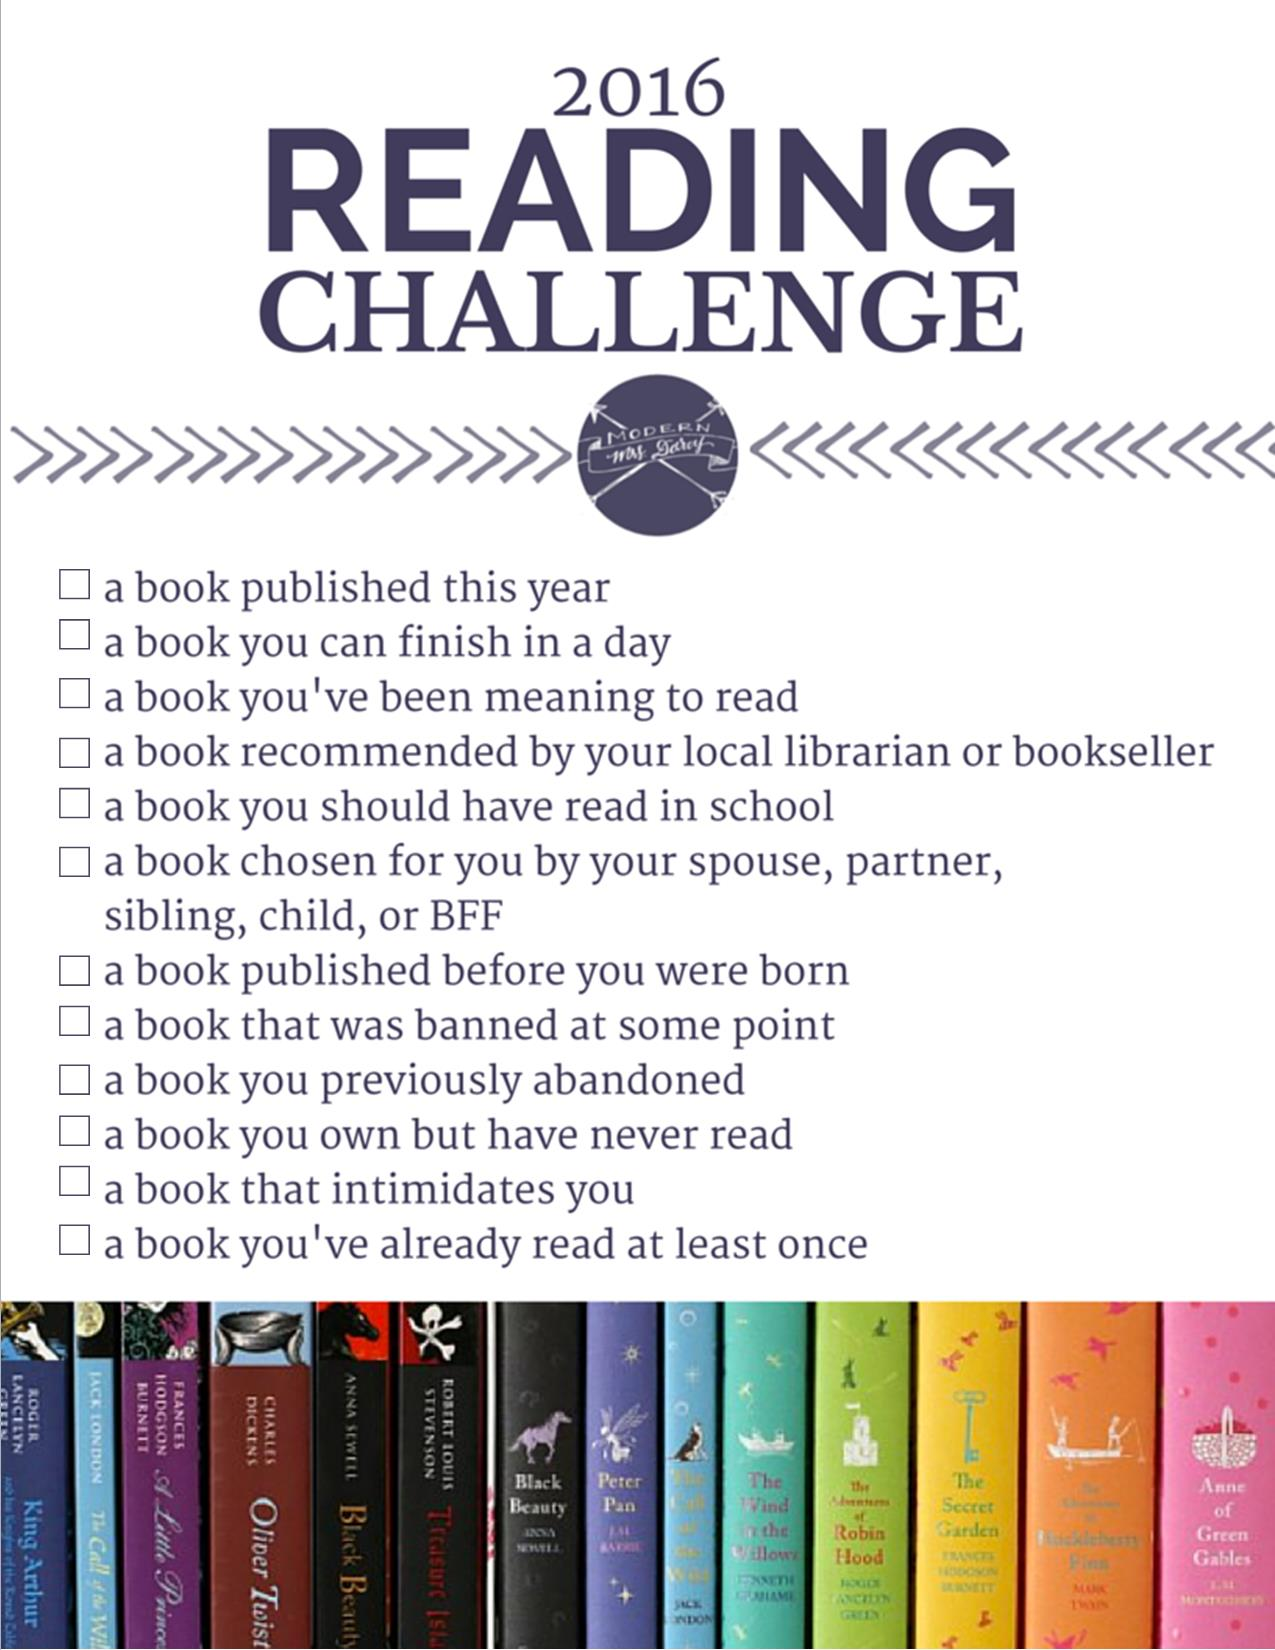 Make 2016 your best reading year yet with this reading challenge. It's simple and doable, but provides the structure you need to approach your reading list with intention in 2016.